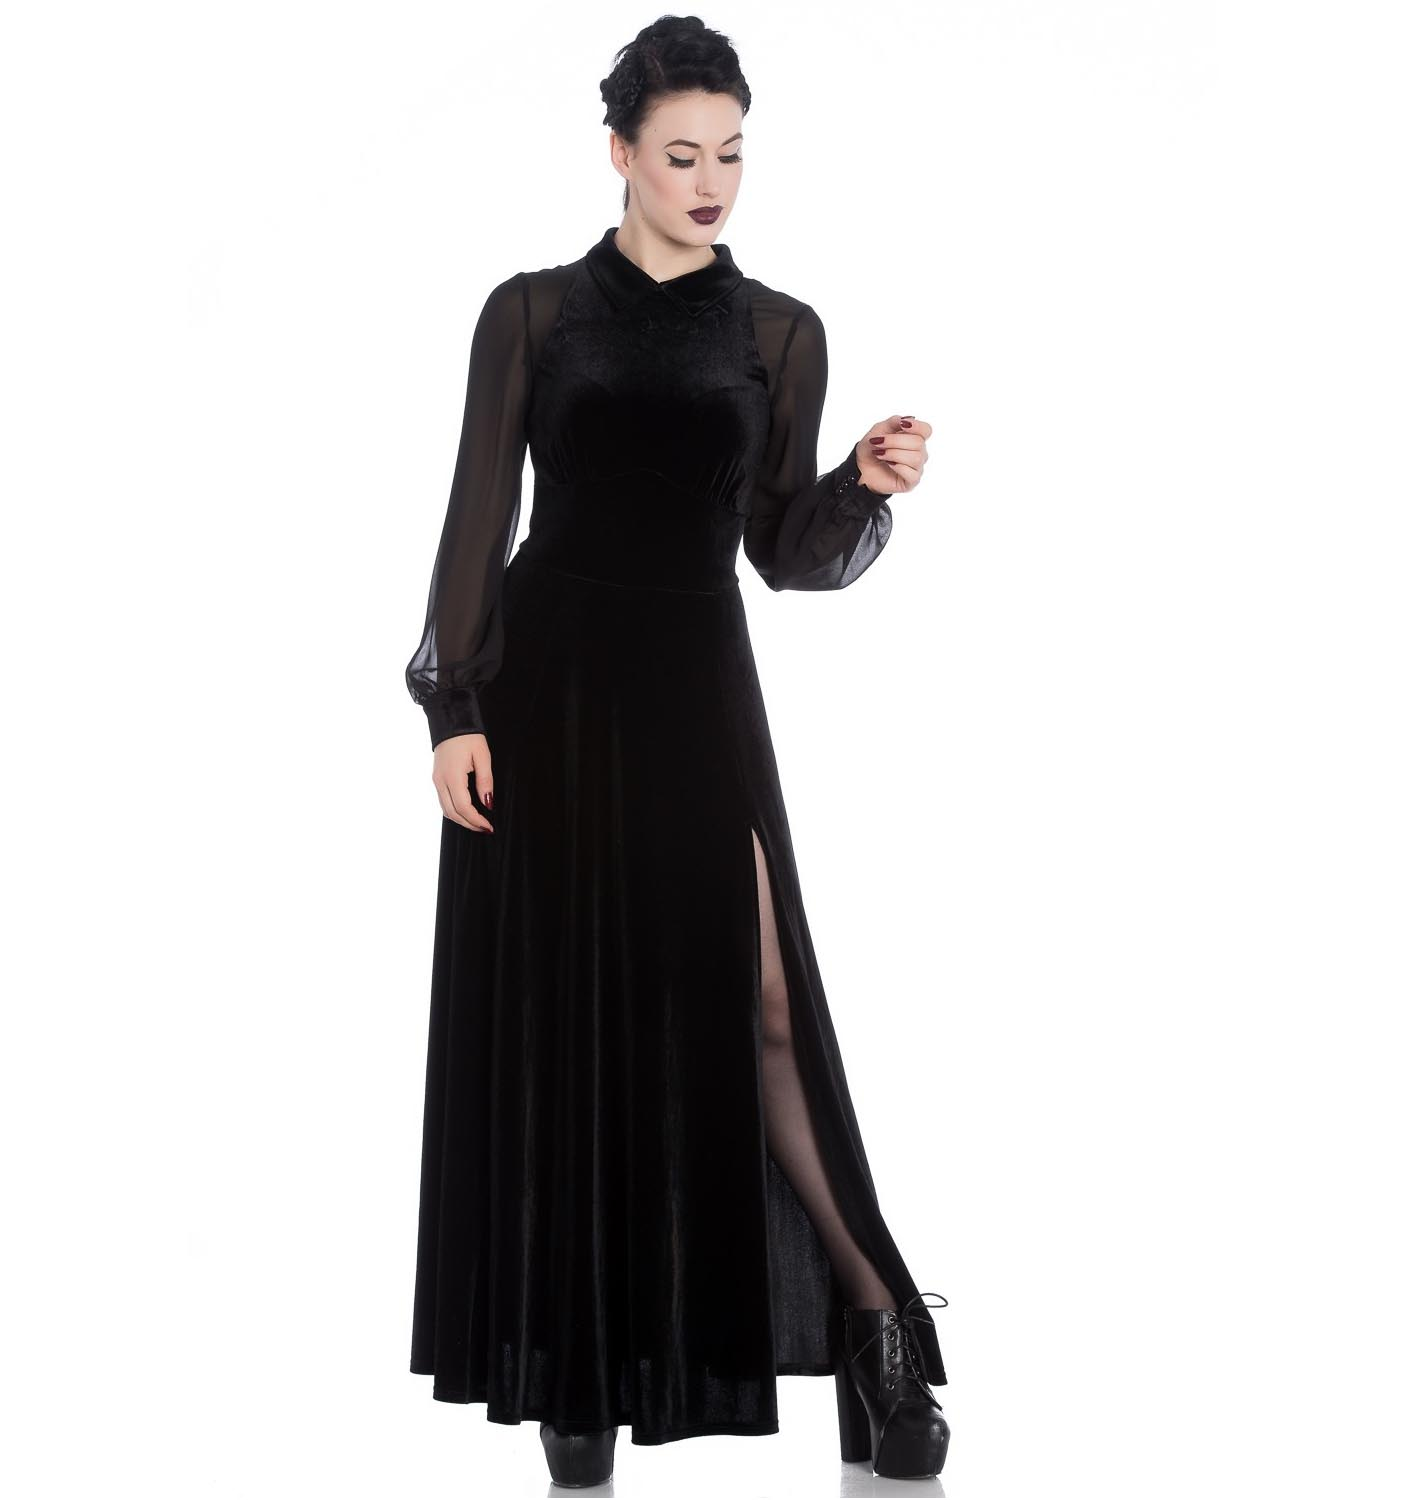 Hell-Bunny-Vampire-Goth-Elegant-Maxi-Dress-ESTELLE-Black-Velvet-Mesh-All-Sizes thumbnail 15